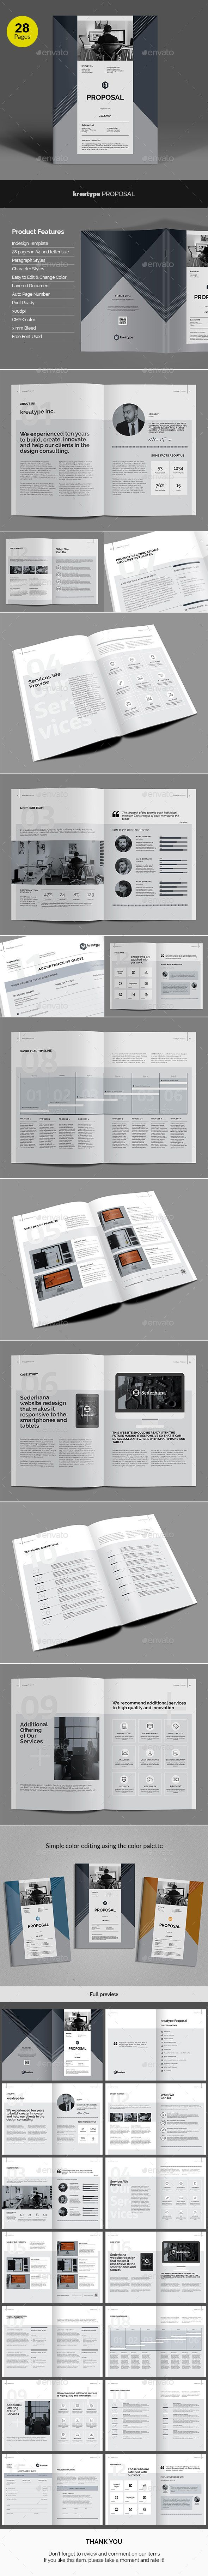 Kreatype Business Proposal Template InDesign INDD Download